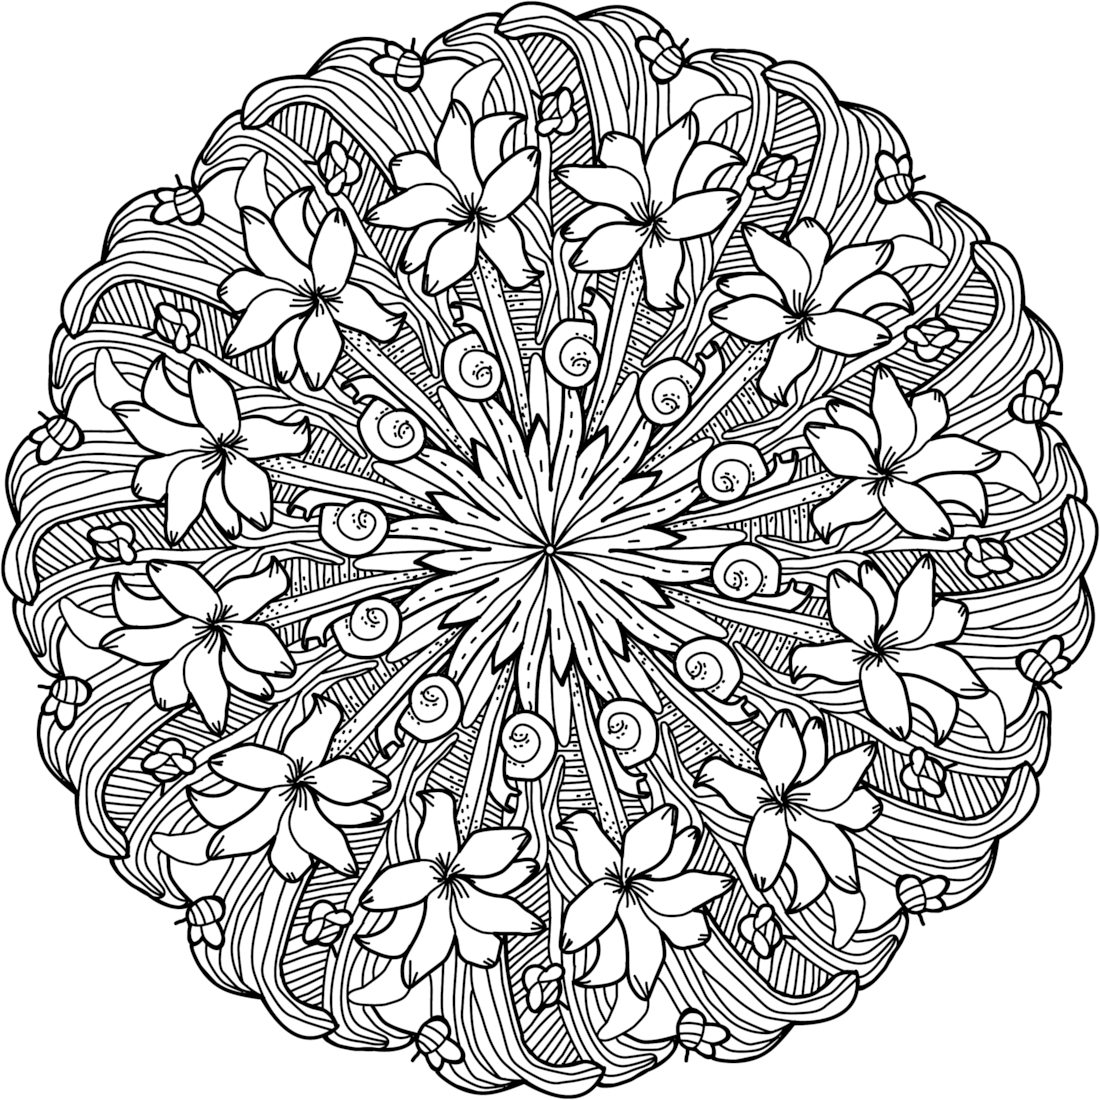 free printable color sheets free printable geometric coloring pages for adults color sheets printable free